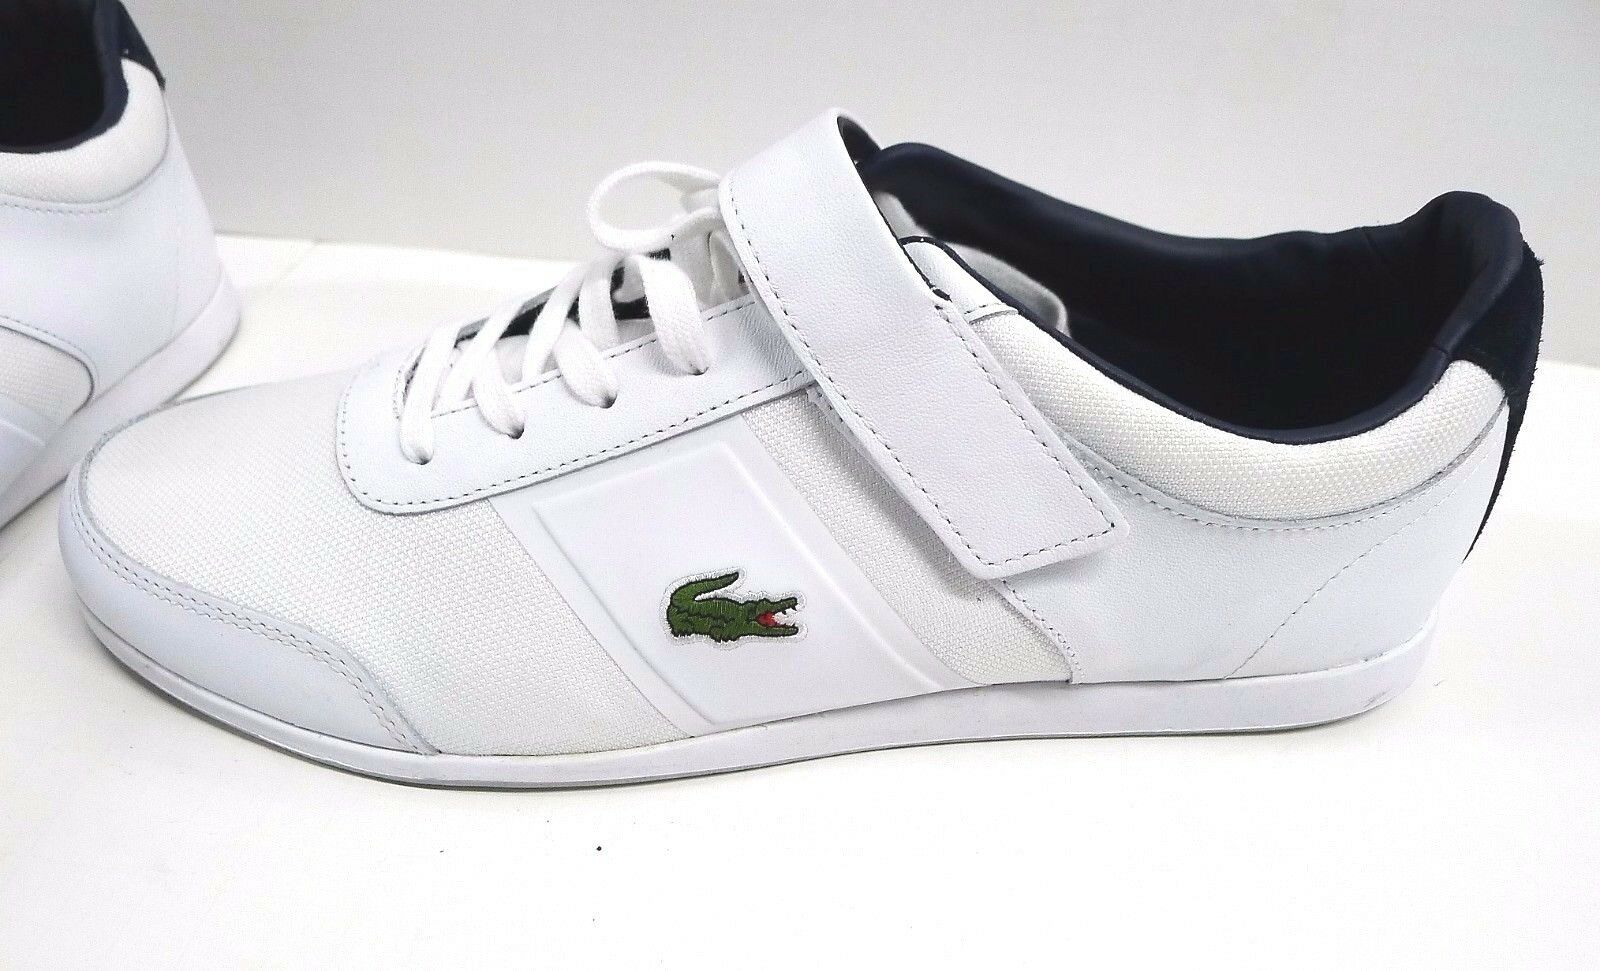 NWOB Lacoste Ortholite White Leather Sneakers